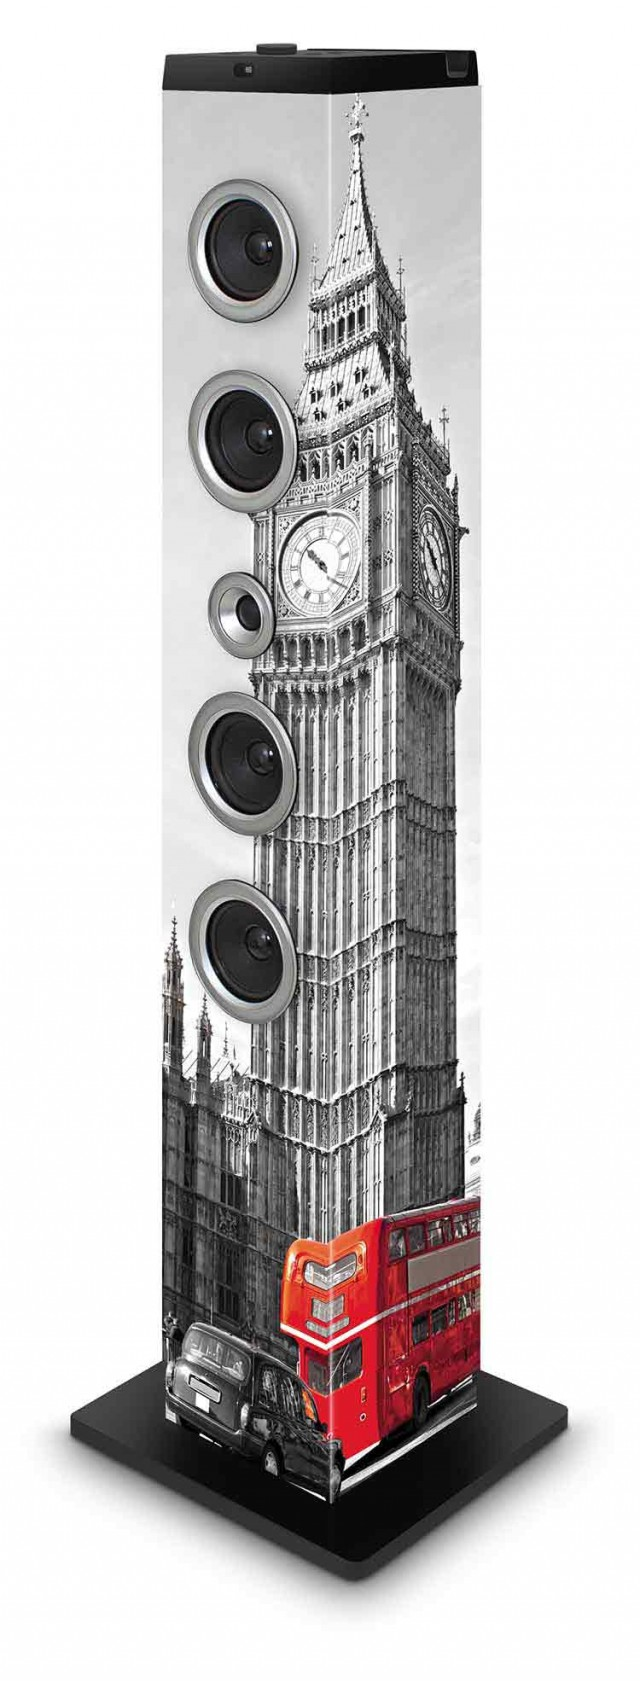 tour multim dia lecteur cd tw12cdparis3 bigben bigben fr sound accessoires gaming mobile. Black Bedroom Furniture Sets. Home Design Ideas